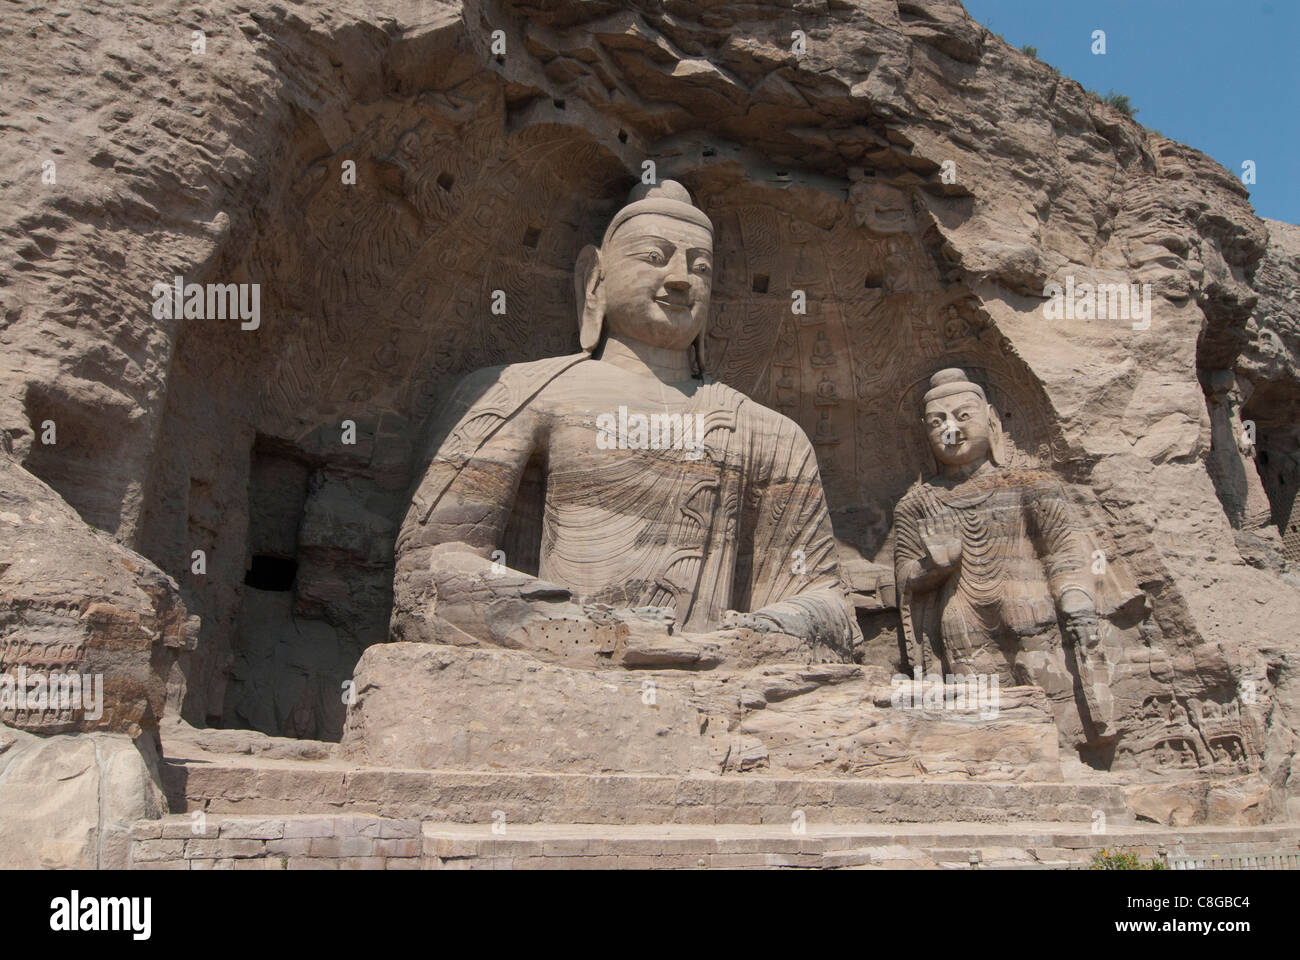 Giant Buddhas at Yungang Grottoes, ancient Buddhist temple grottoes near Datong, UNESCO World Heritage Site, Shanxi, - Stock Image